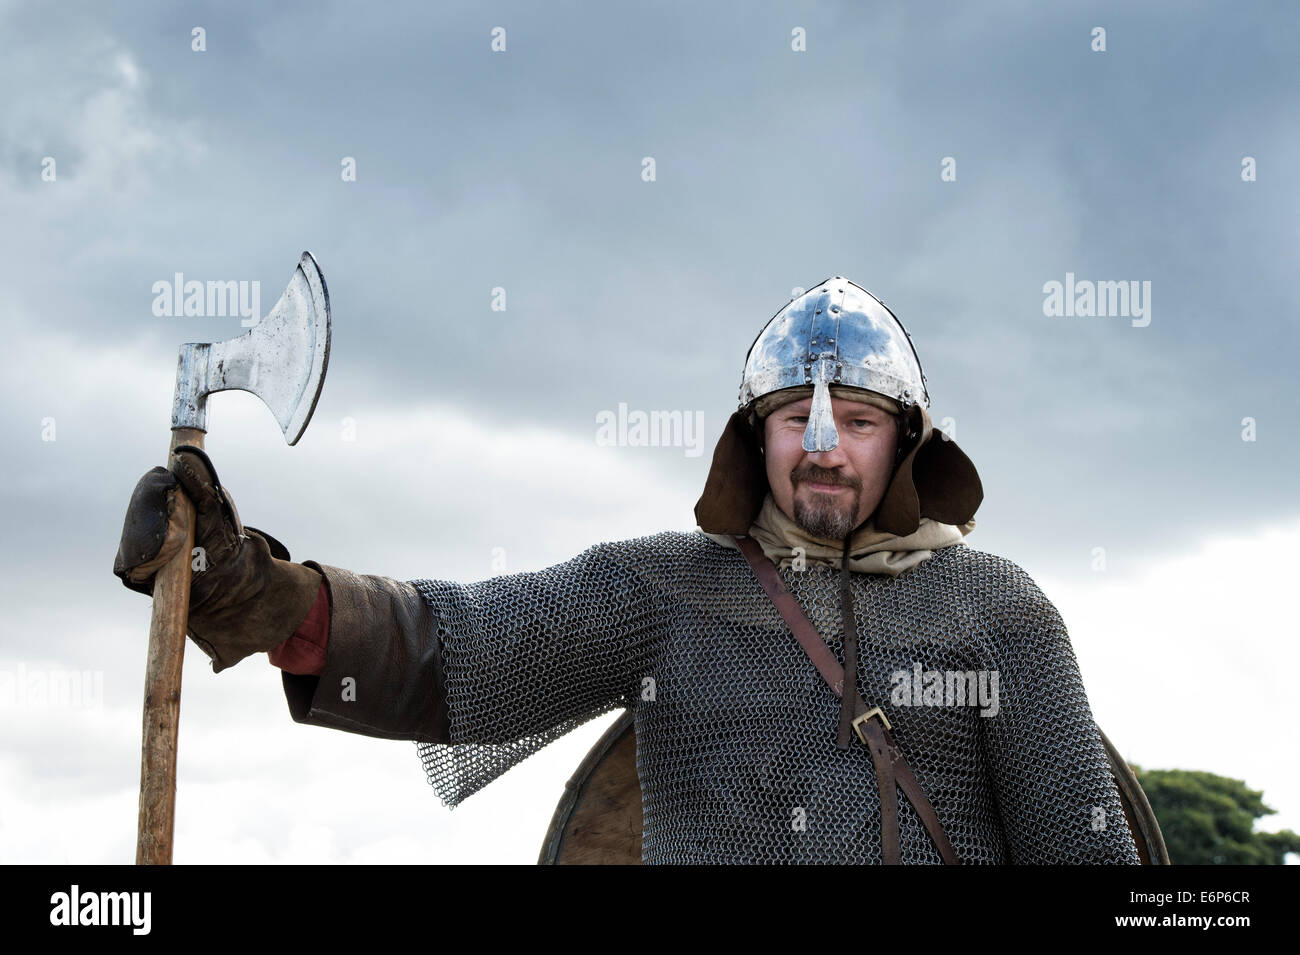 Viking wearing armor and carrying an axe at a historical reenactment. UK - Stock Image